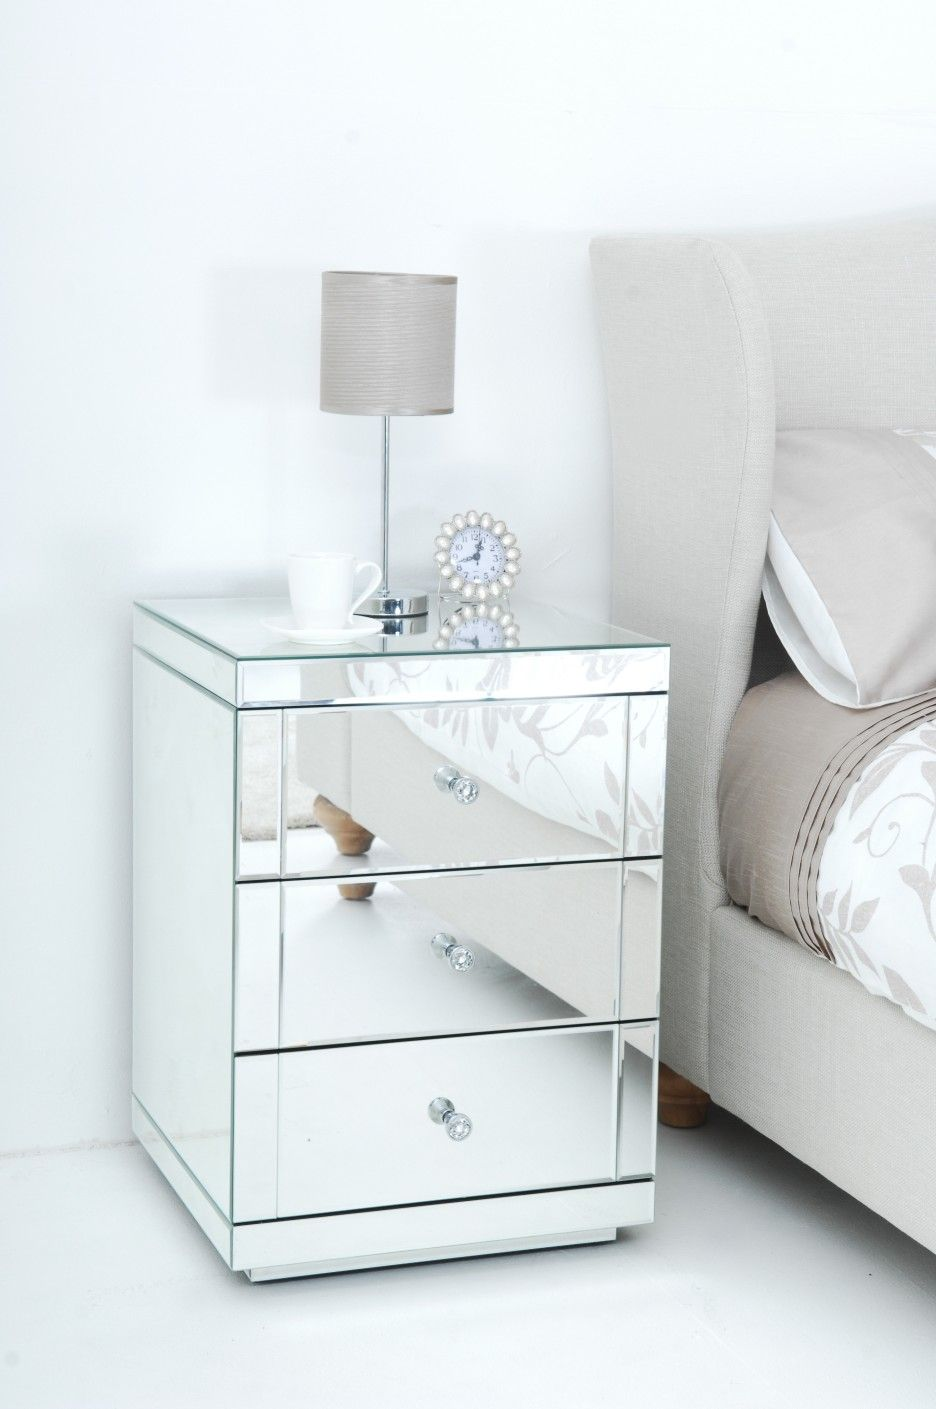 Furniture Square Mirror Bedside Table With Three Drawers And Round Acrylic S Combined Small Reading Lamp Fabulous Unusual Tables For Make